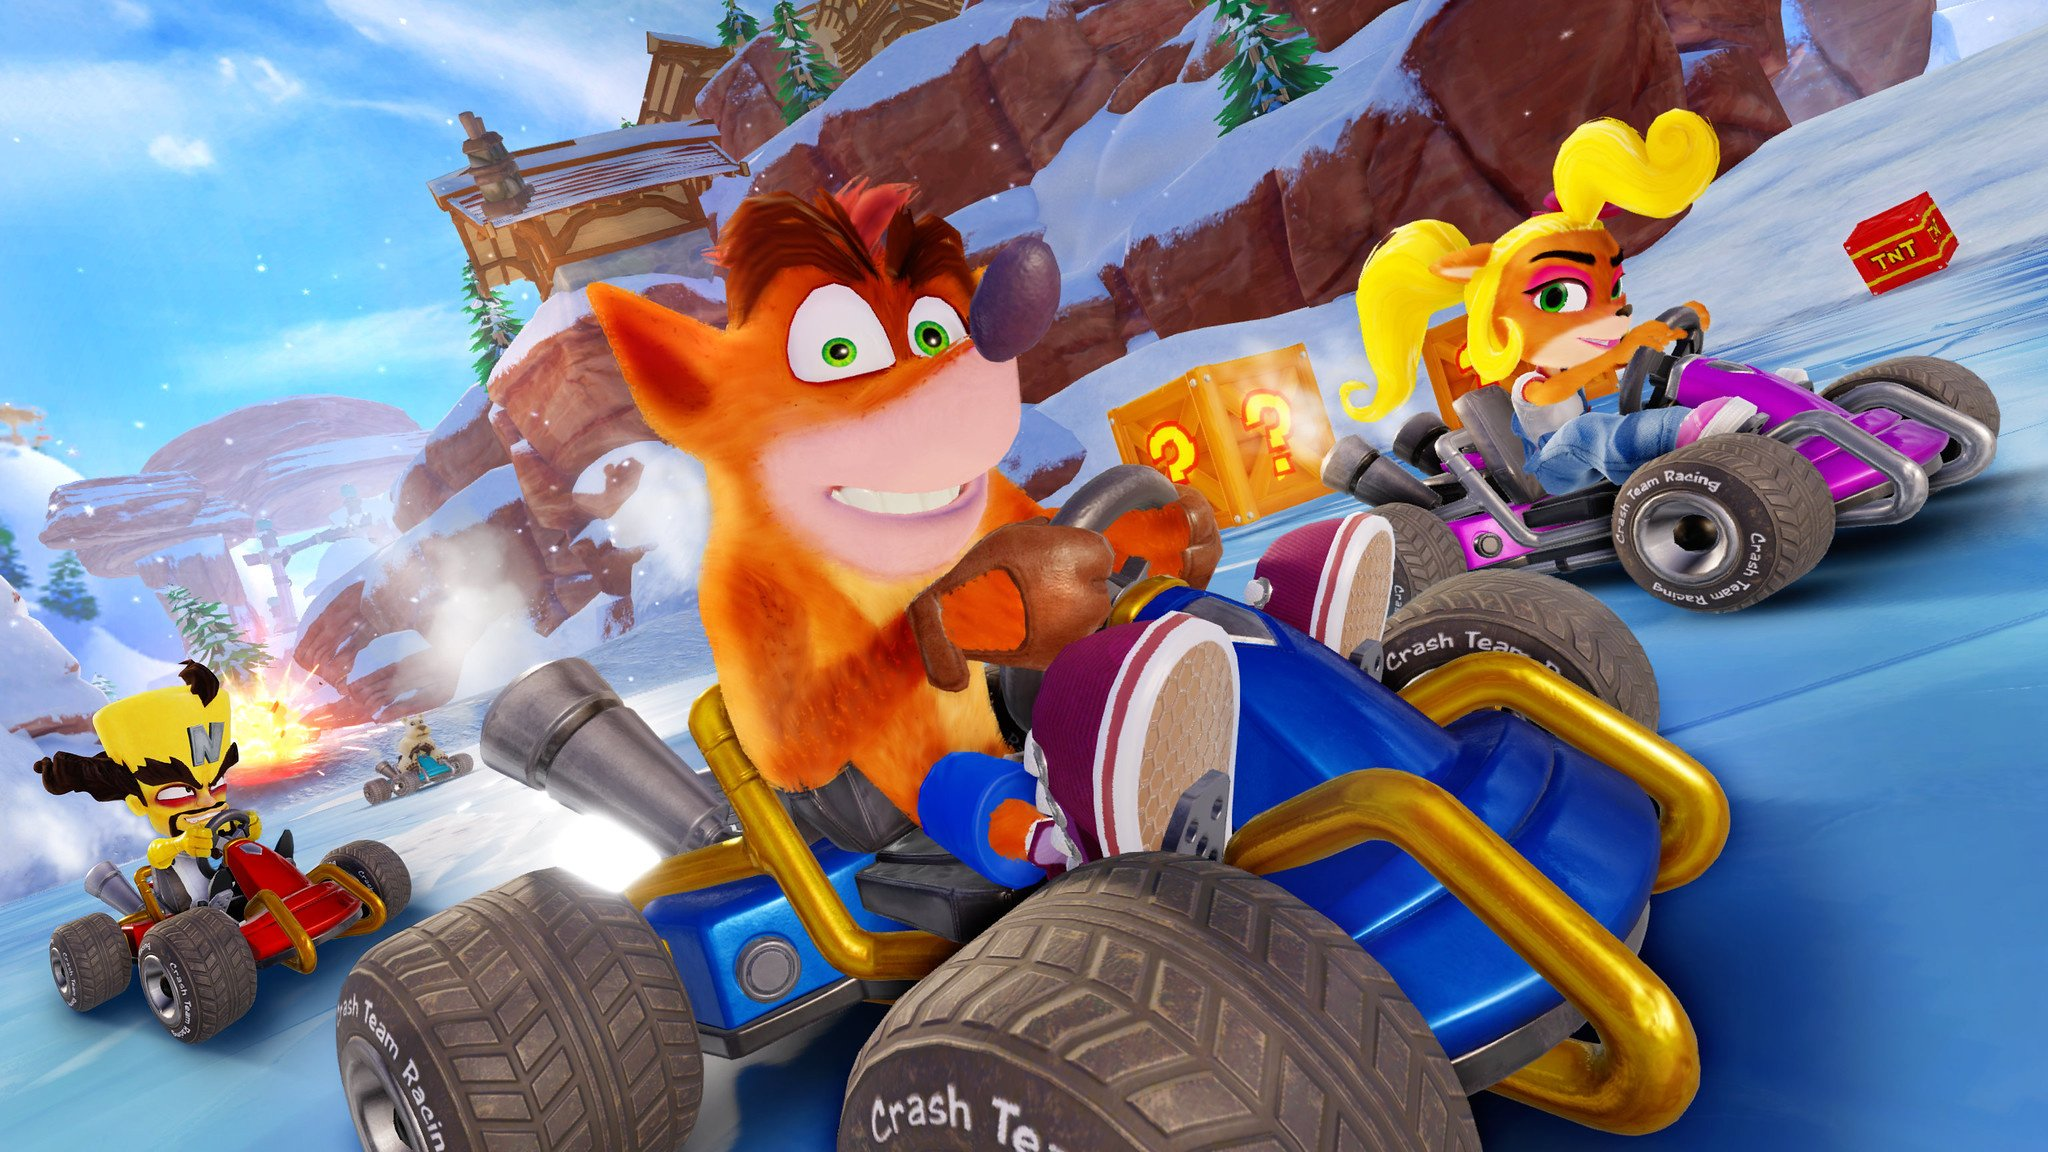 Crash Team Racing: Nitro-Fueled's Adventure Mode detailed, new footage shared